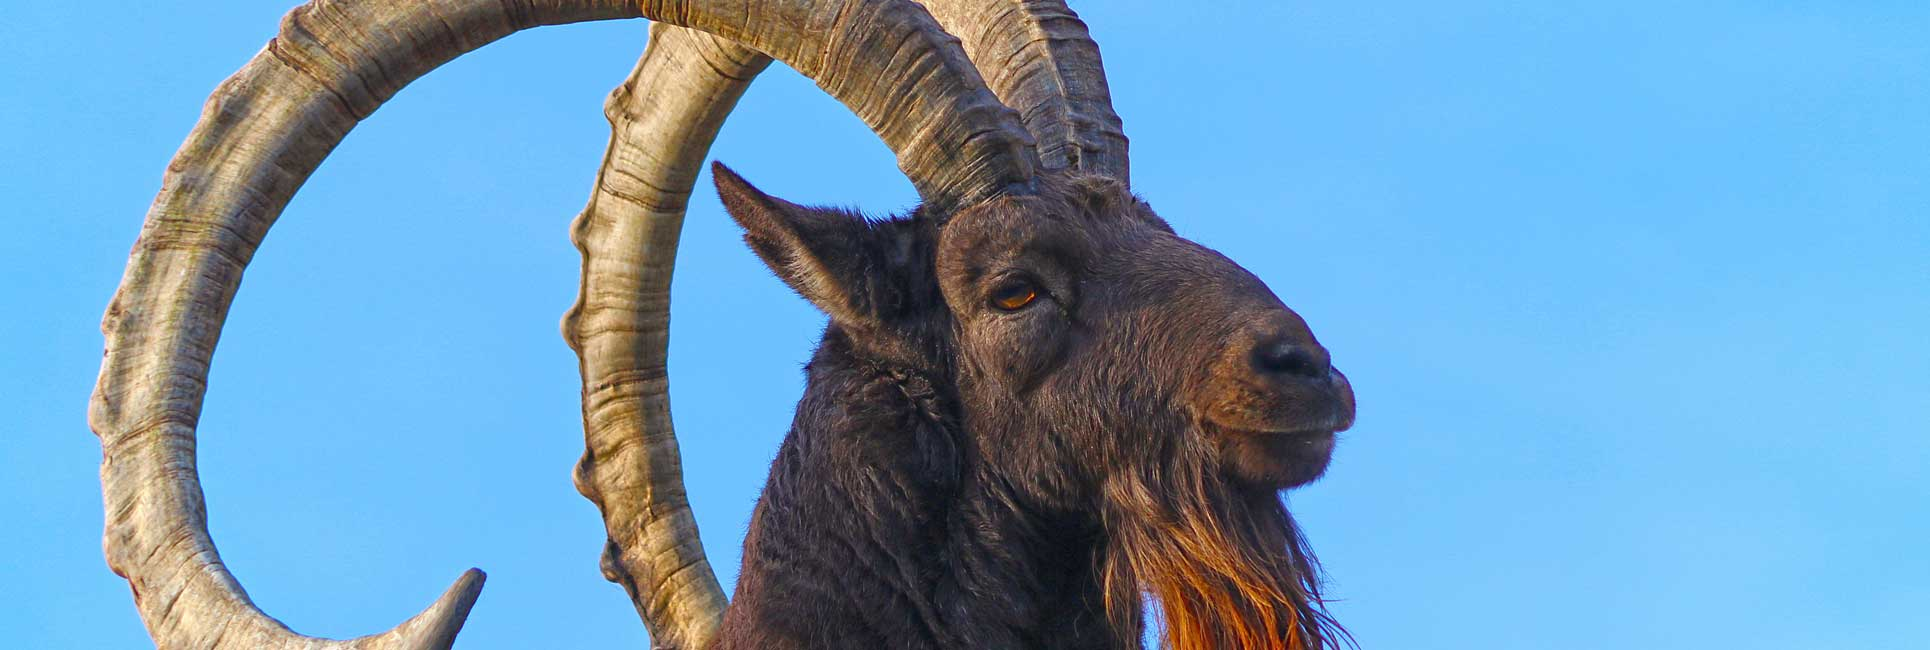 A close up portrait of a male Ibex with large curled horns and a red beard